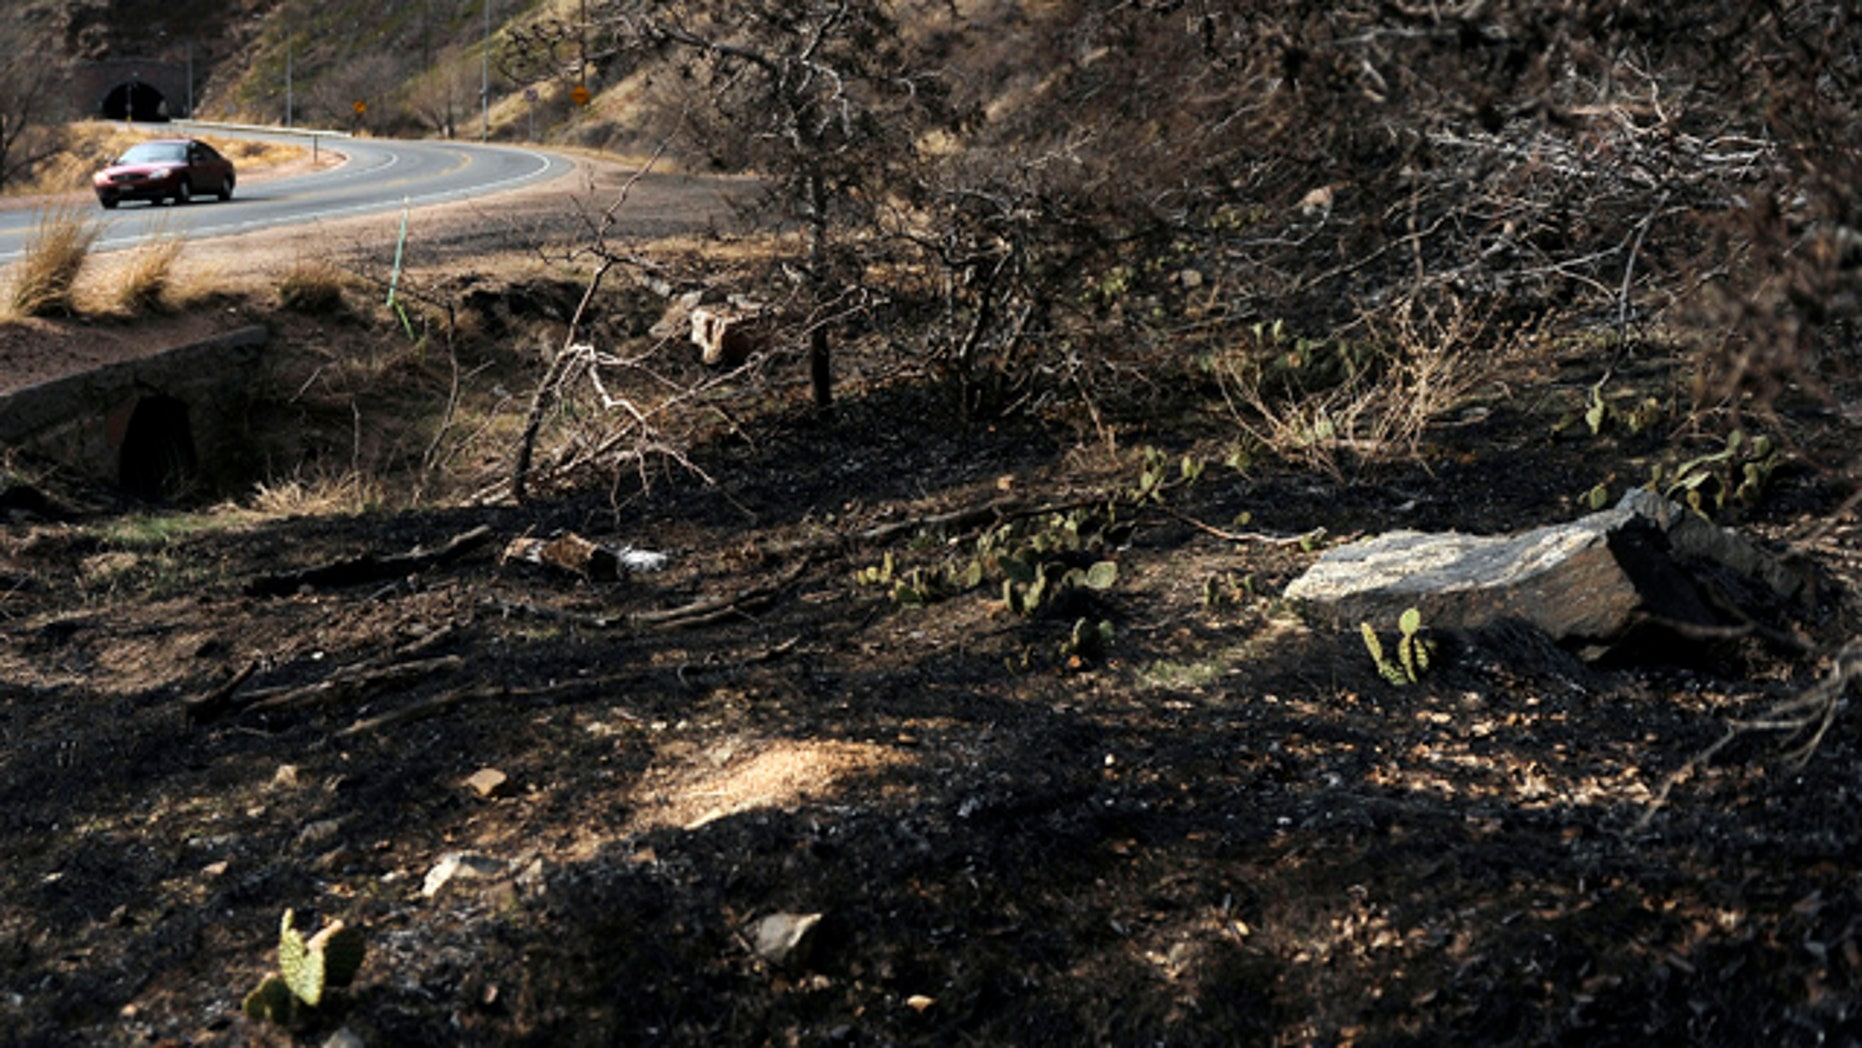 March 21: Fire crews have established a containment line on the southeast edge of the Indian Gulch fire, along Highway 6 in Clear Creek Canyon, Colo.